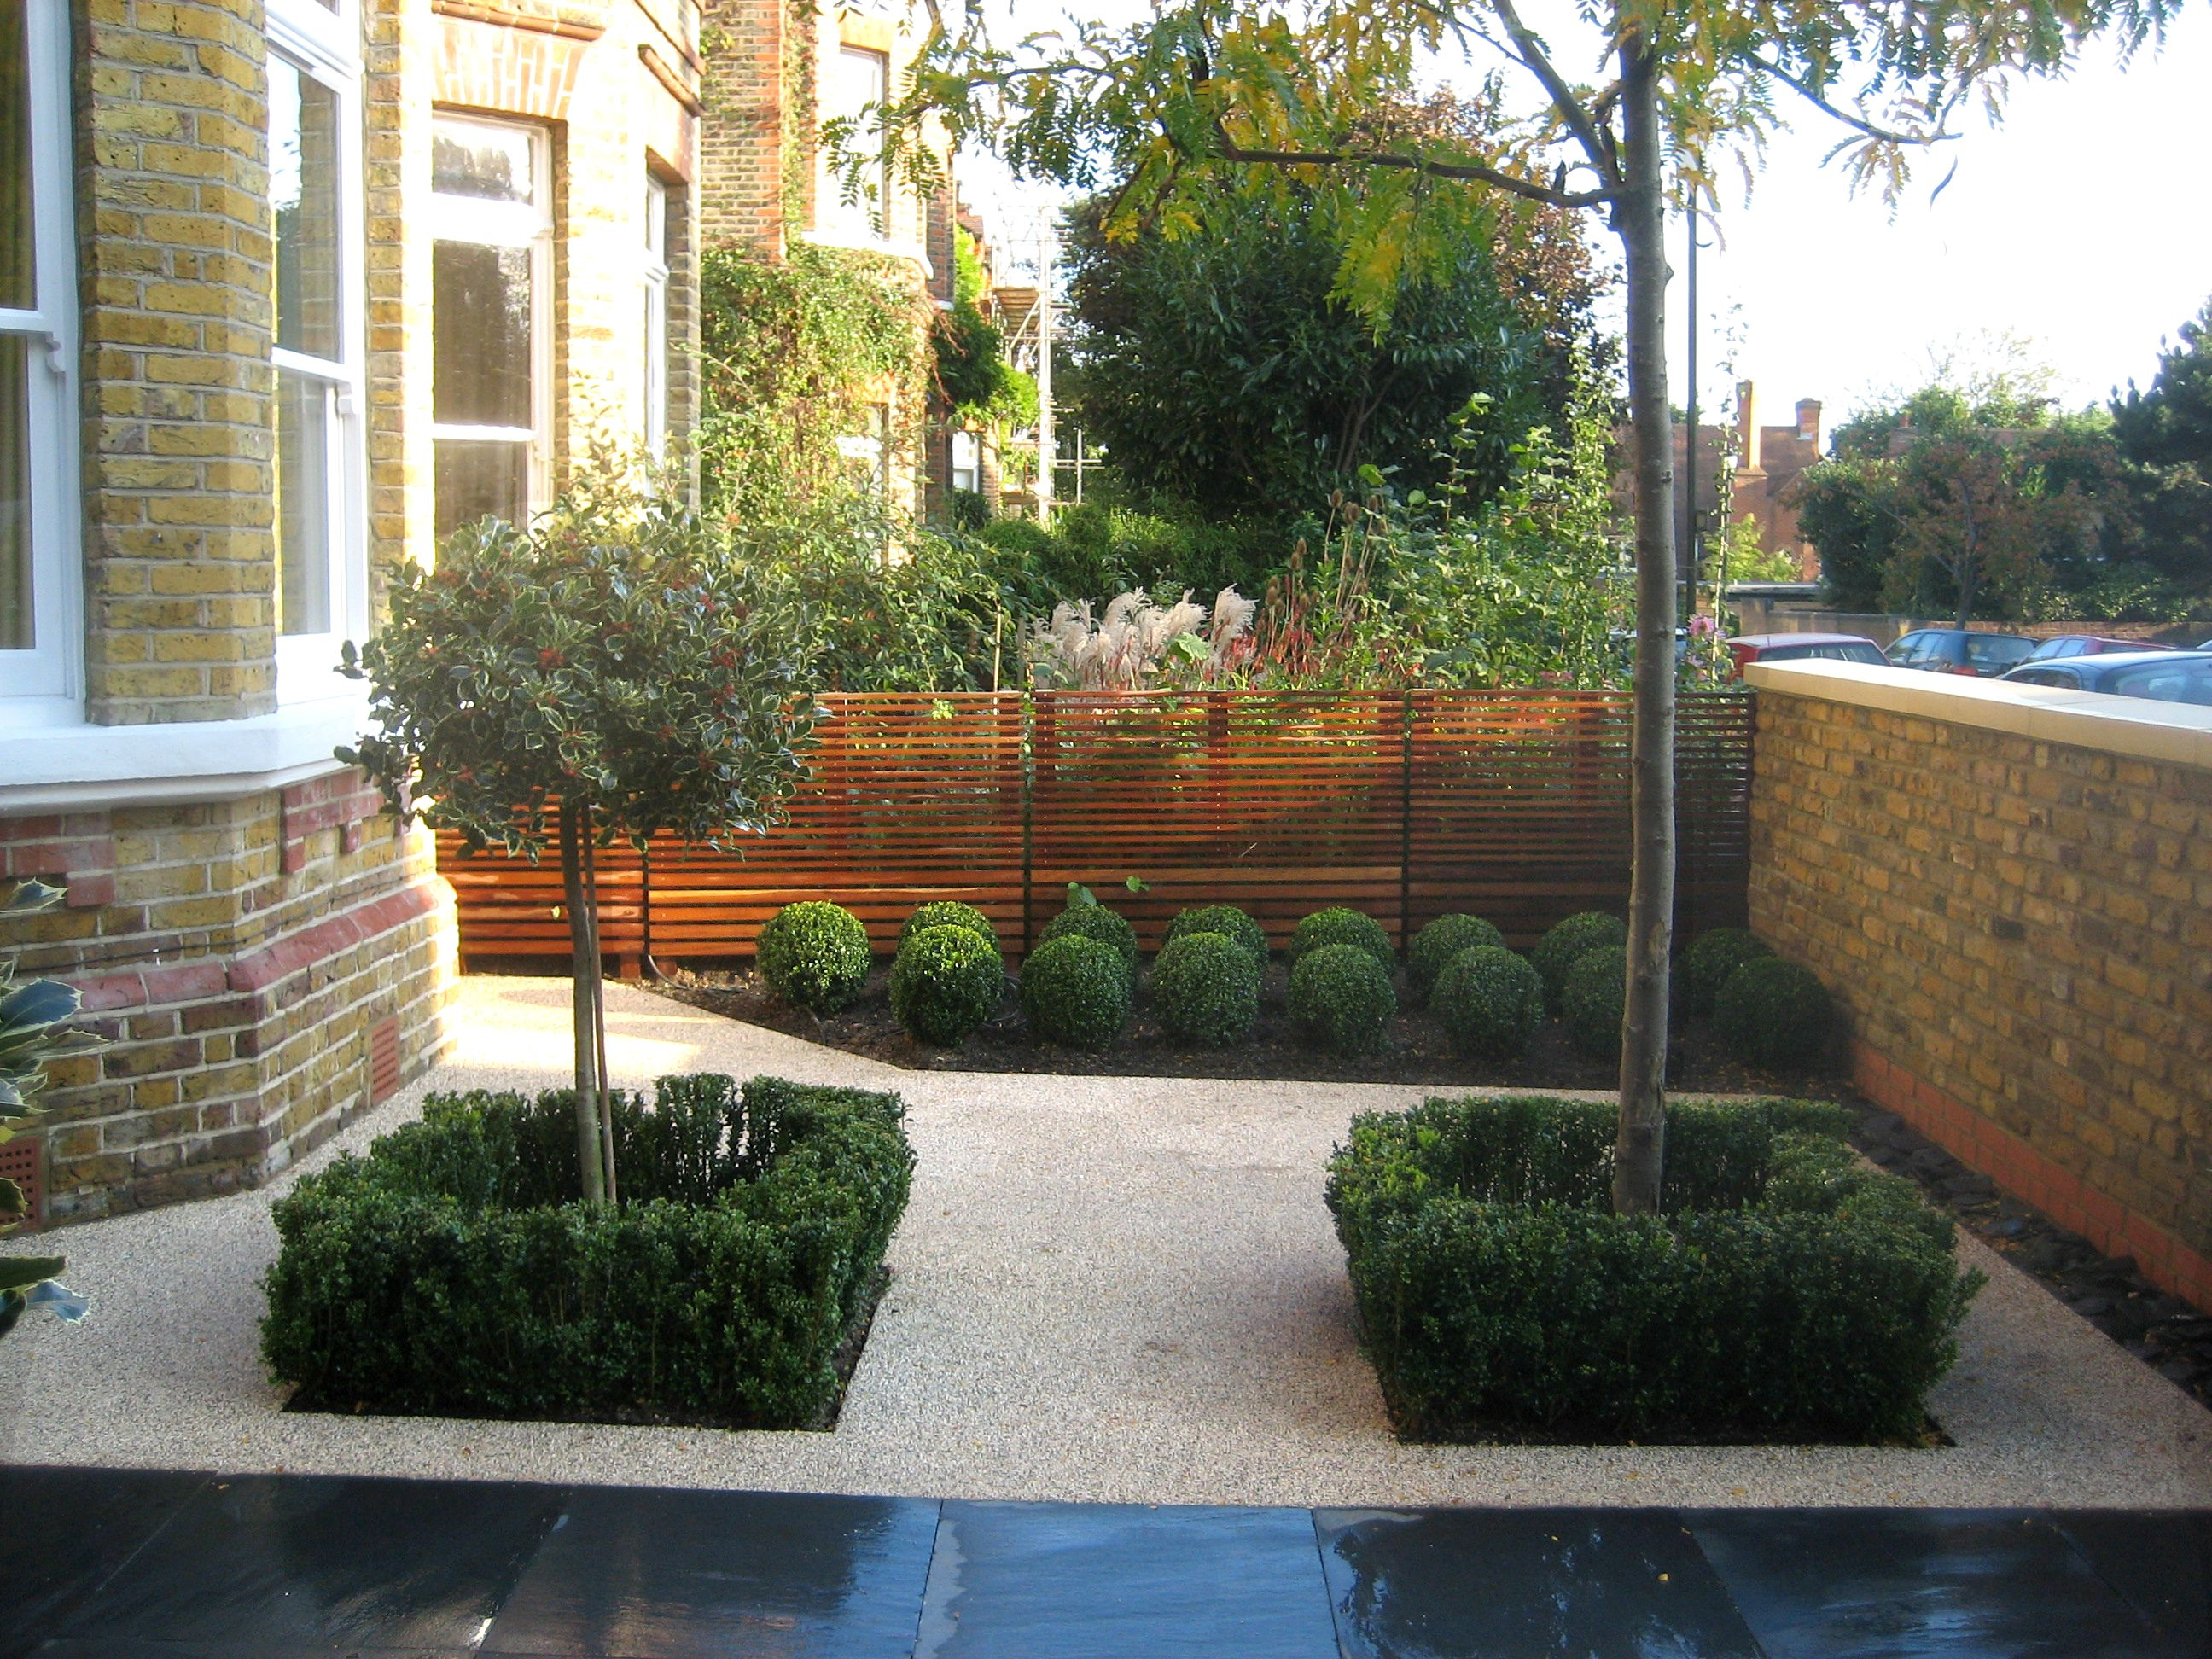 London townhouse front gardens garden ftempo - Garden ideas london ...